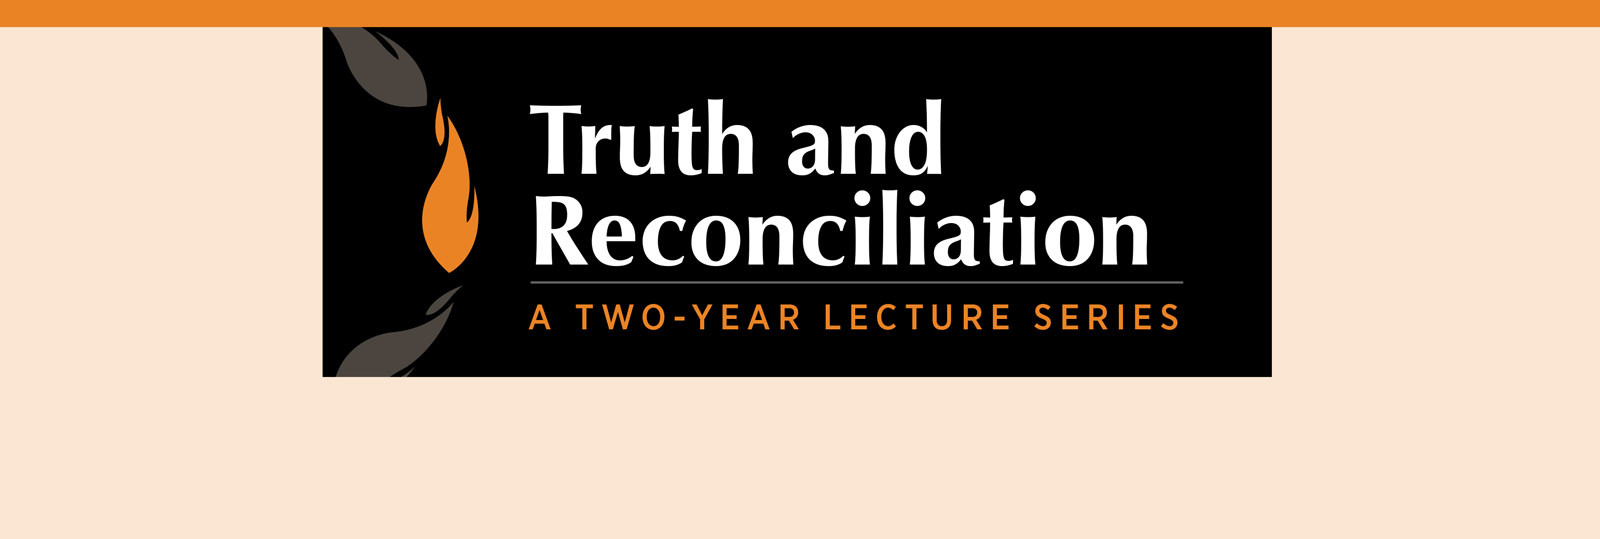 Truth and Reconciliation Lecture: The Rev'd Chris Harper